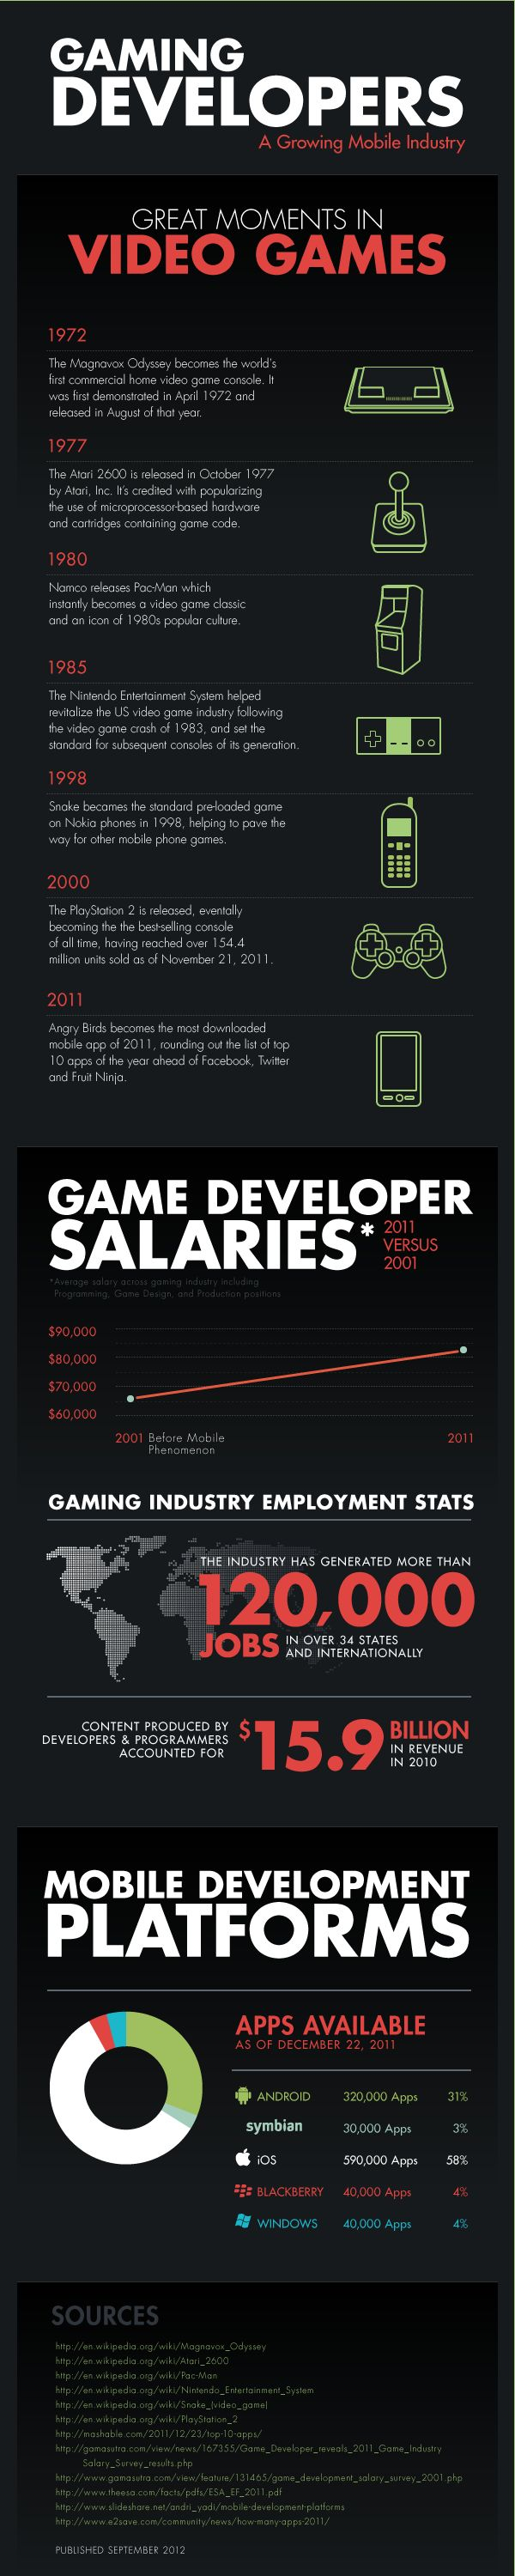 Great moments in video games #infographic